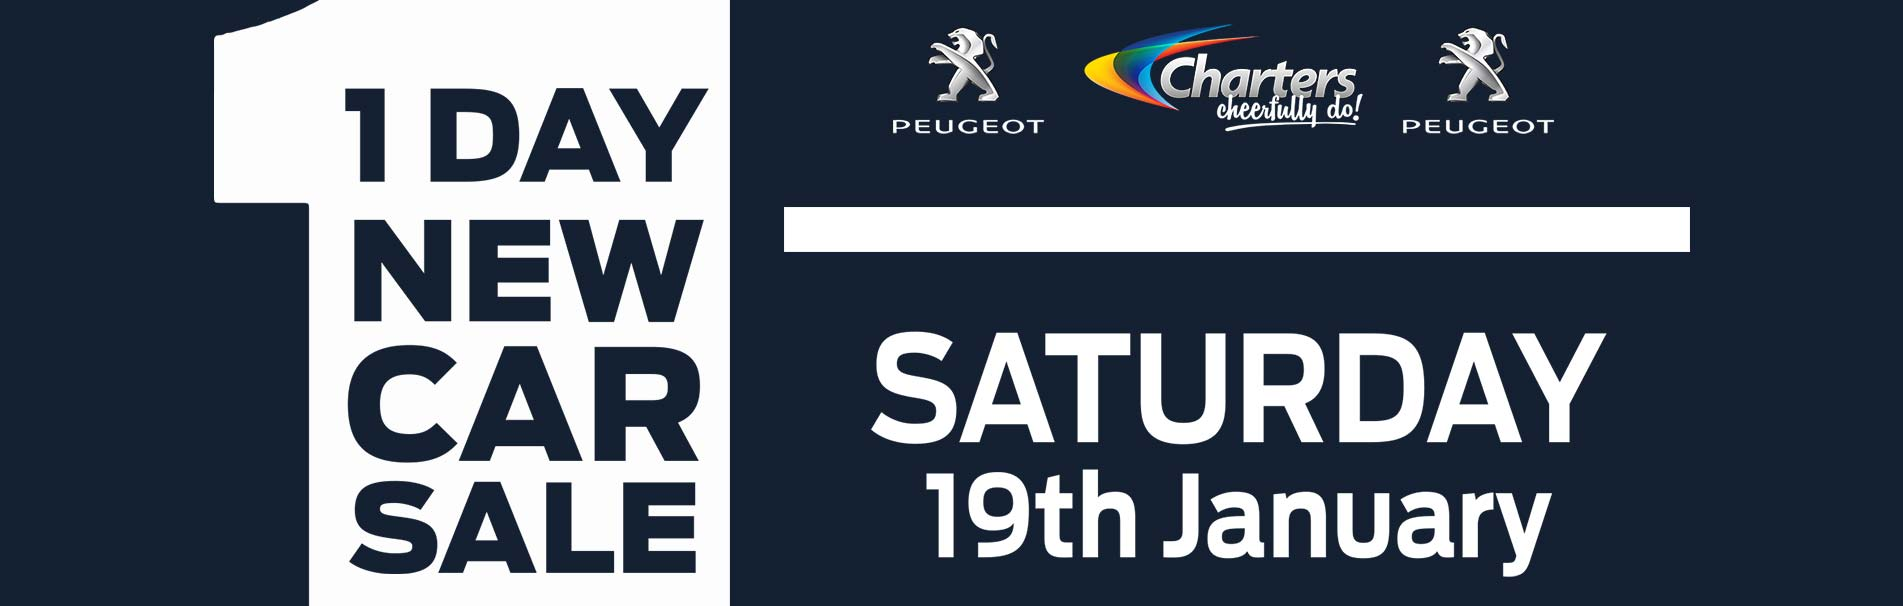 peugeot-1-day-sale-19th-january-30-percent-discount-108-sli